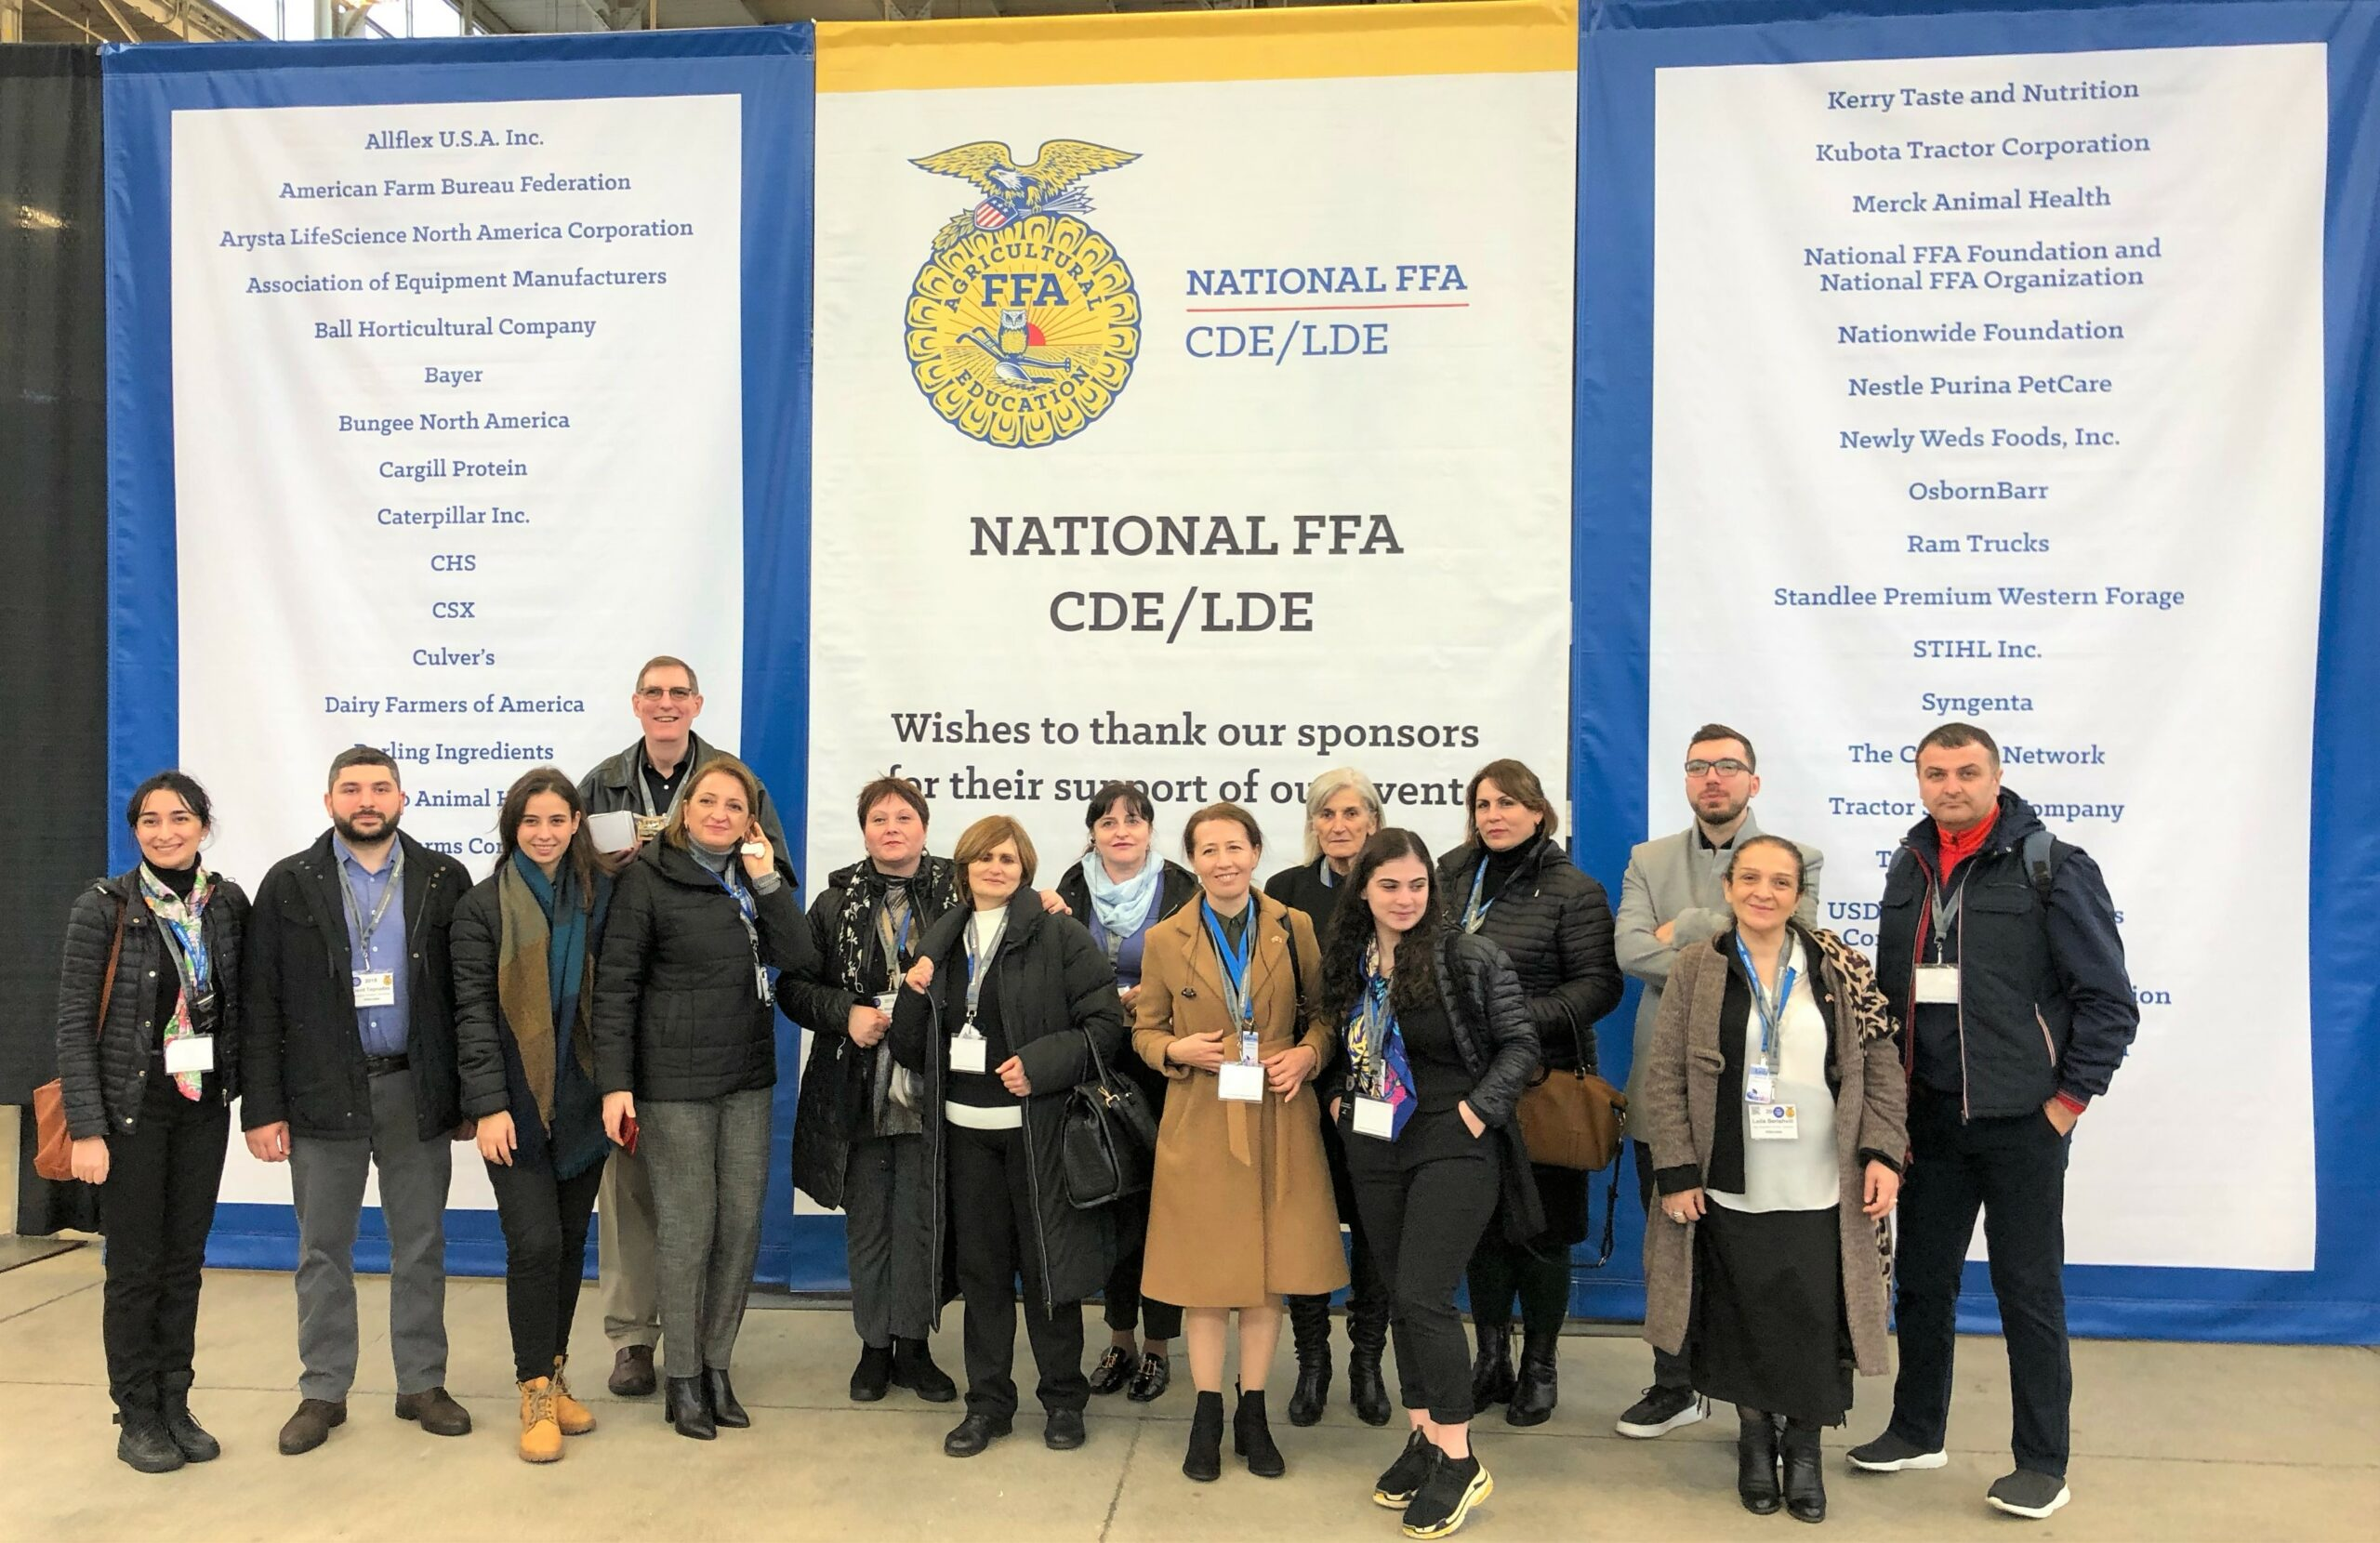 Principals of the two Cultivatoria schools were a part of a delegation from Georgia that attended the National FFA Convention in Indianapolis, Indiana to see career development competitions.